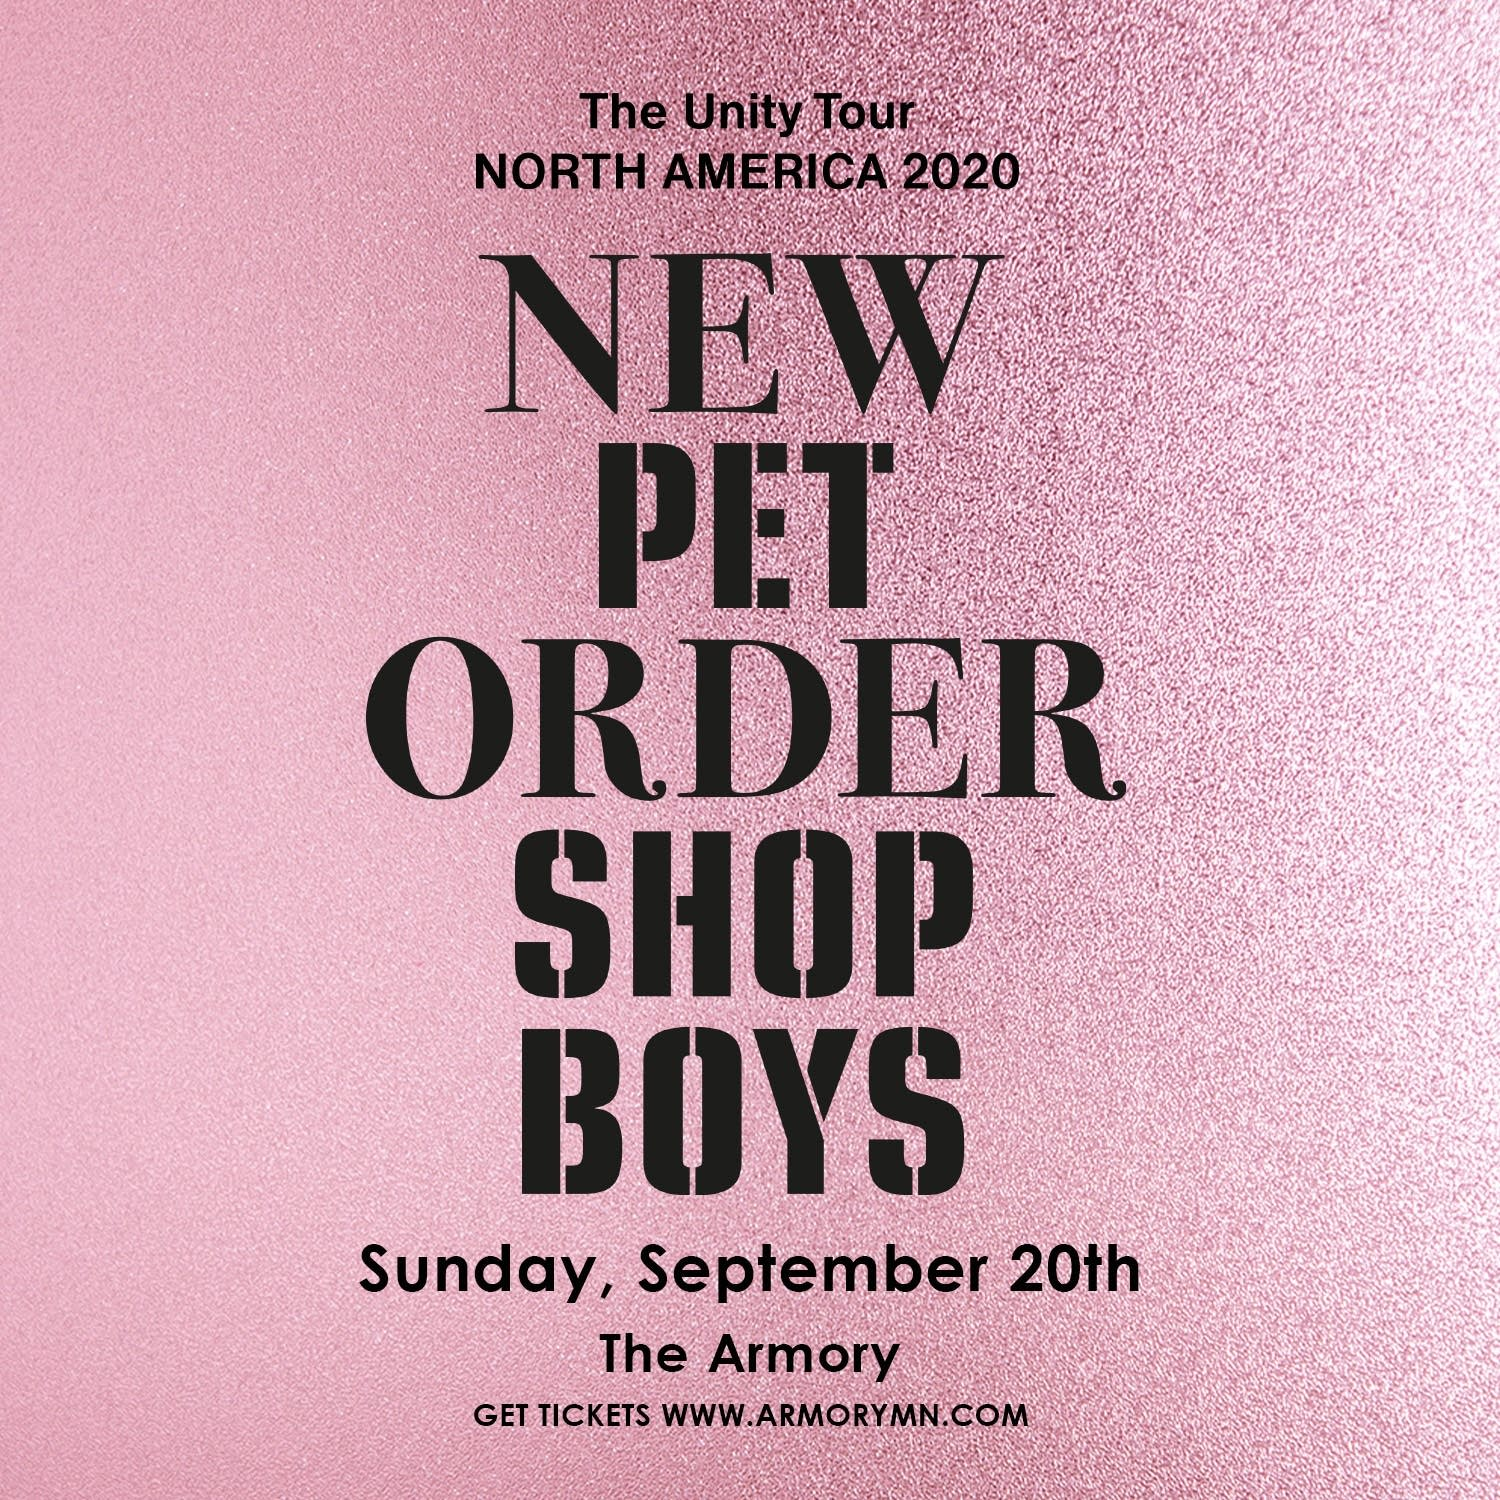 New Order/Pet Shop Boys flyer.